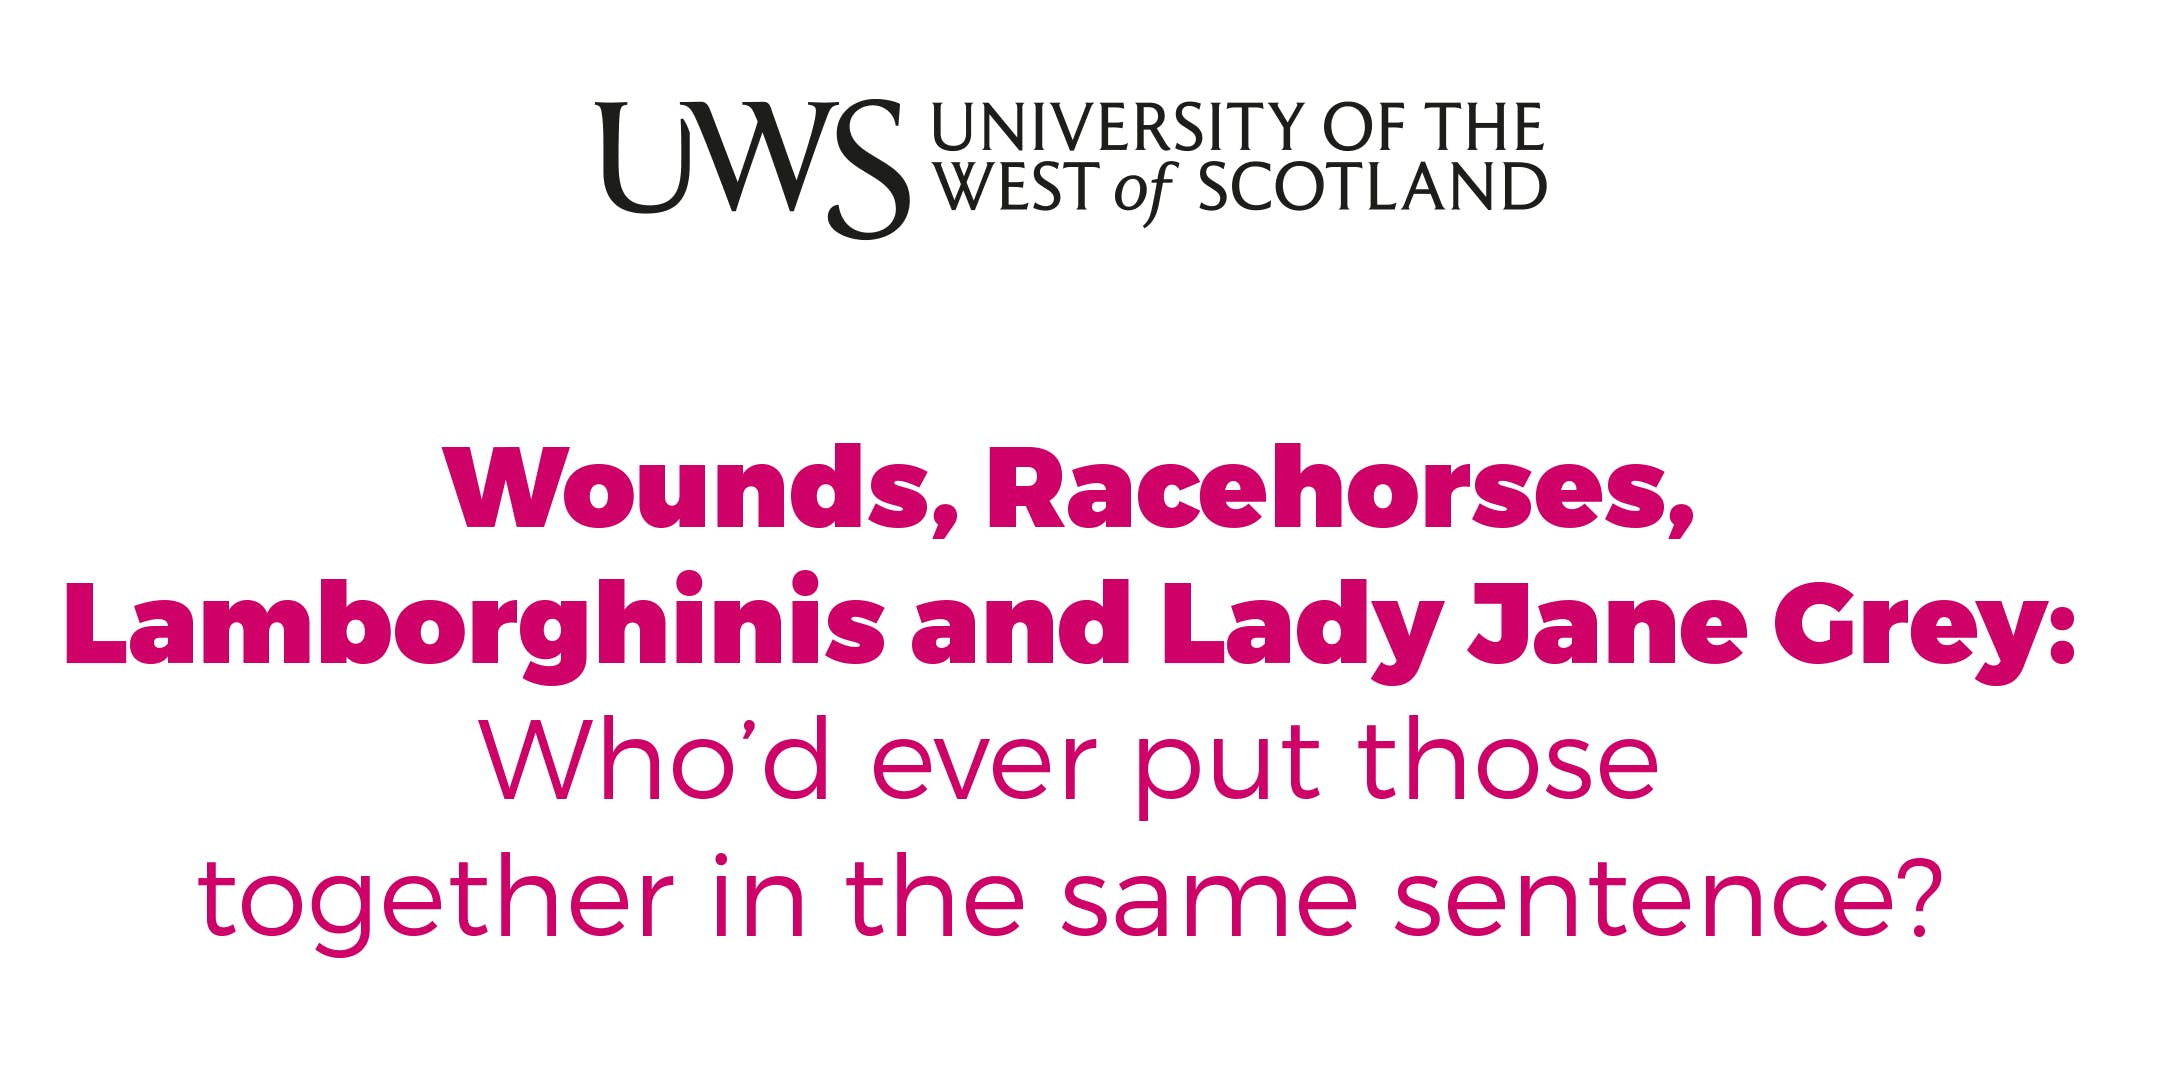 Wounds, Racehorses, Lamborghinis and Lady Jan